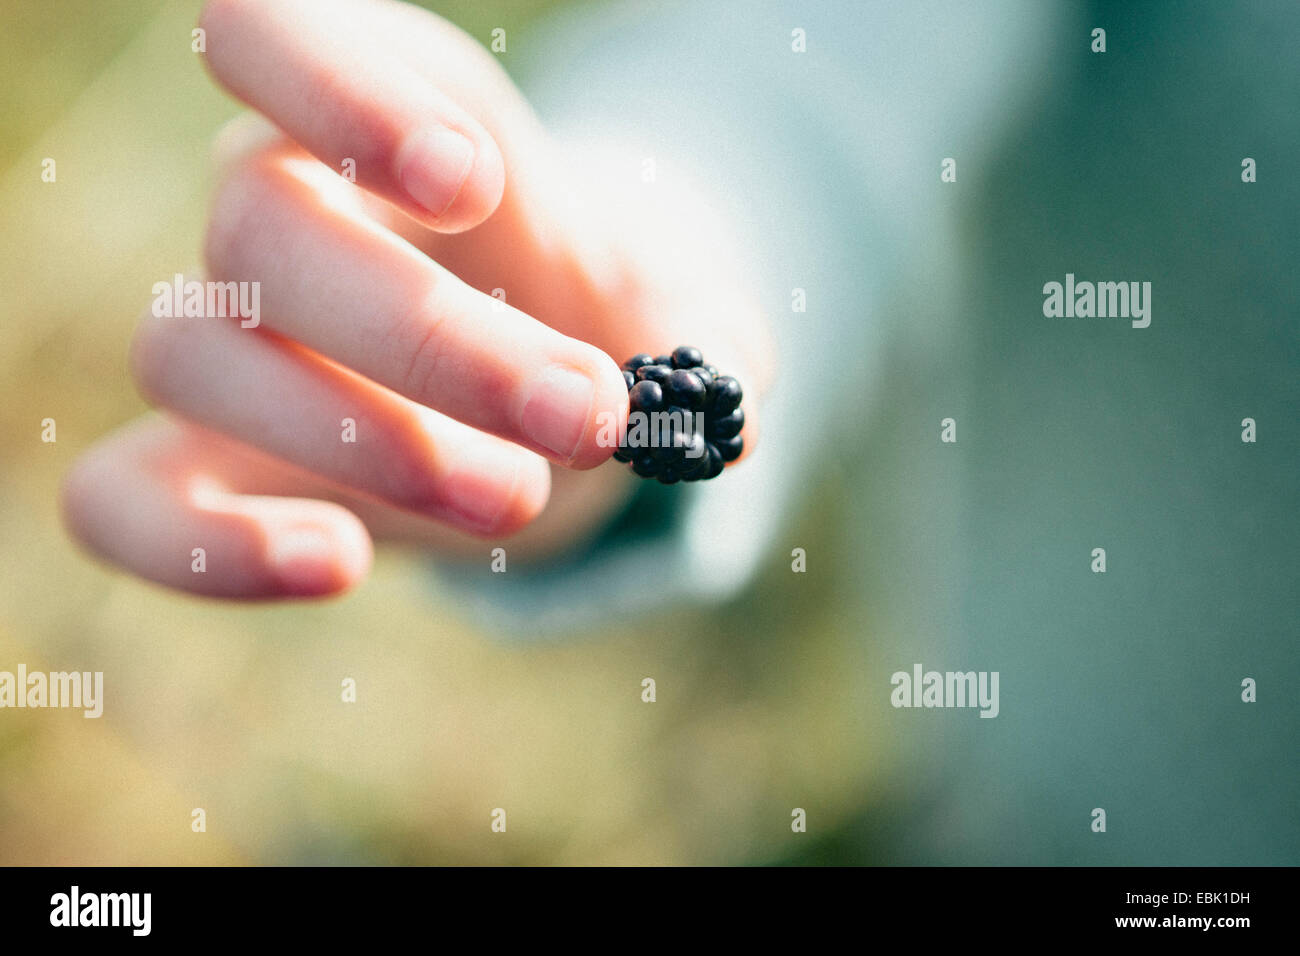 Person holding blackberry, close up Stock Photo